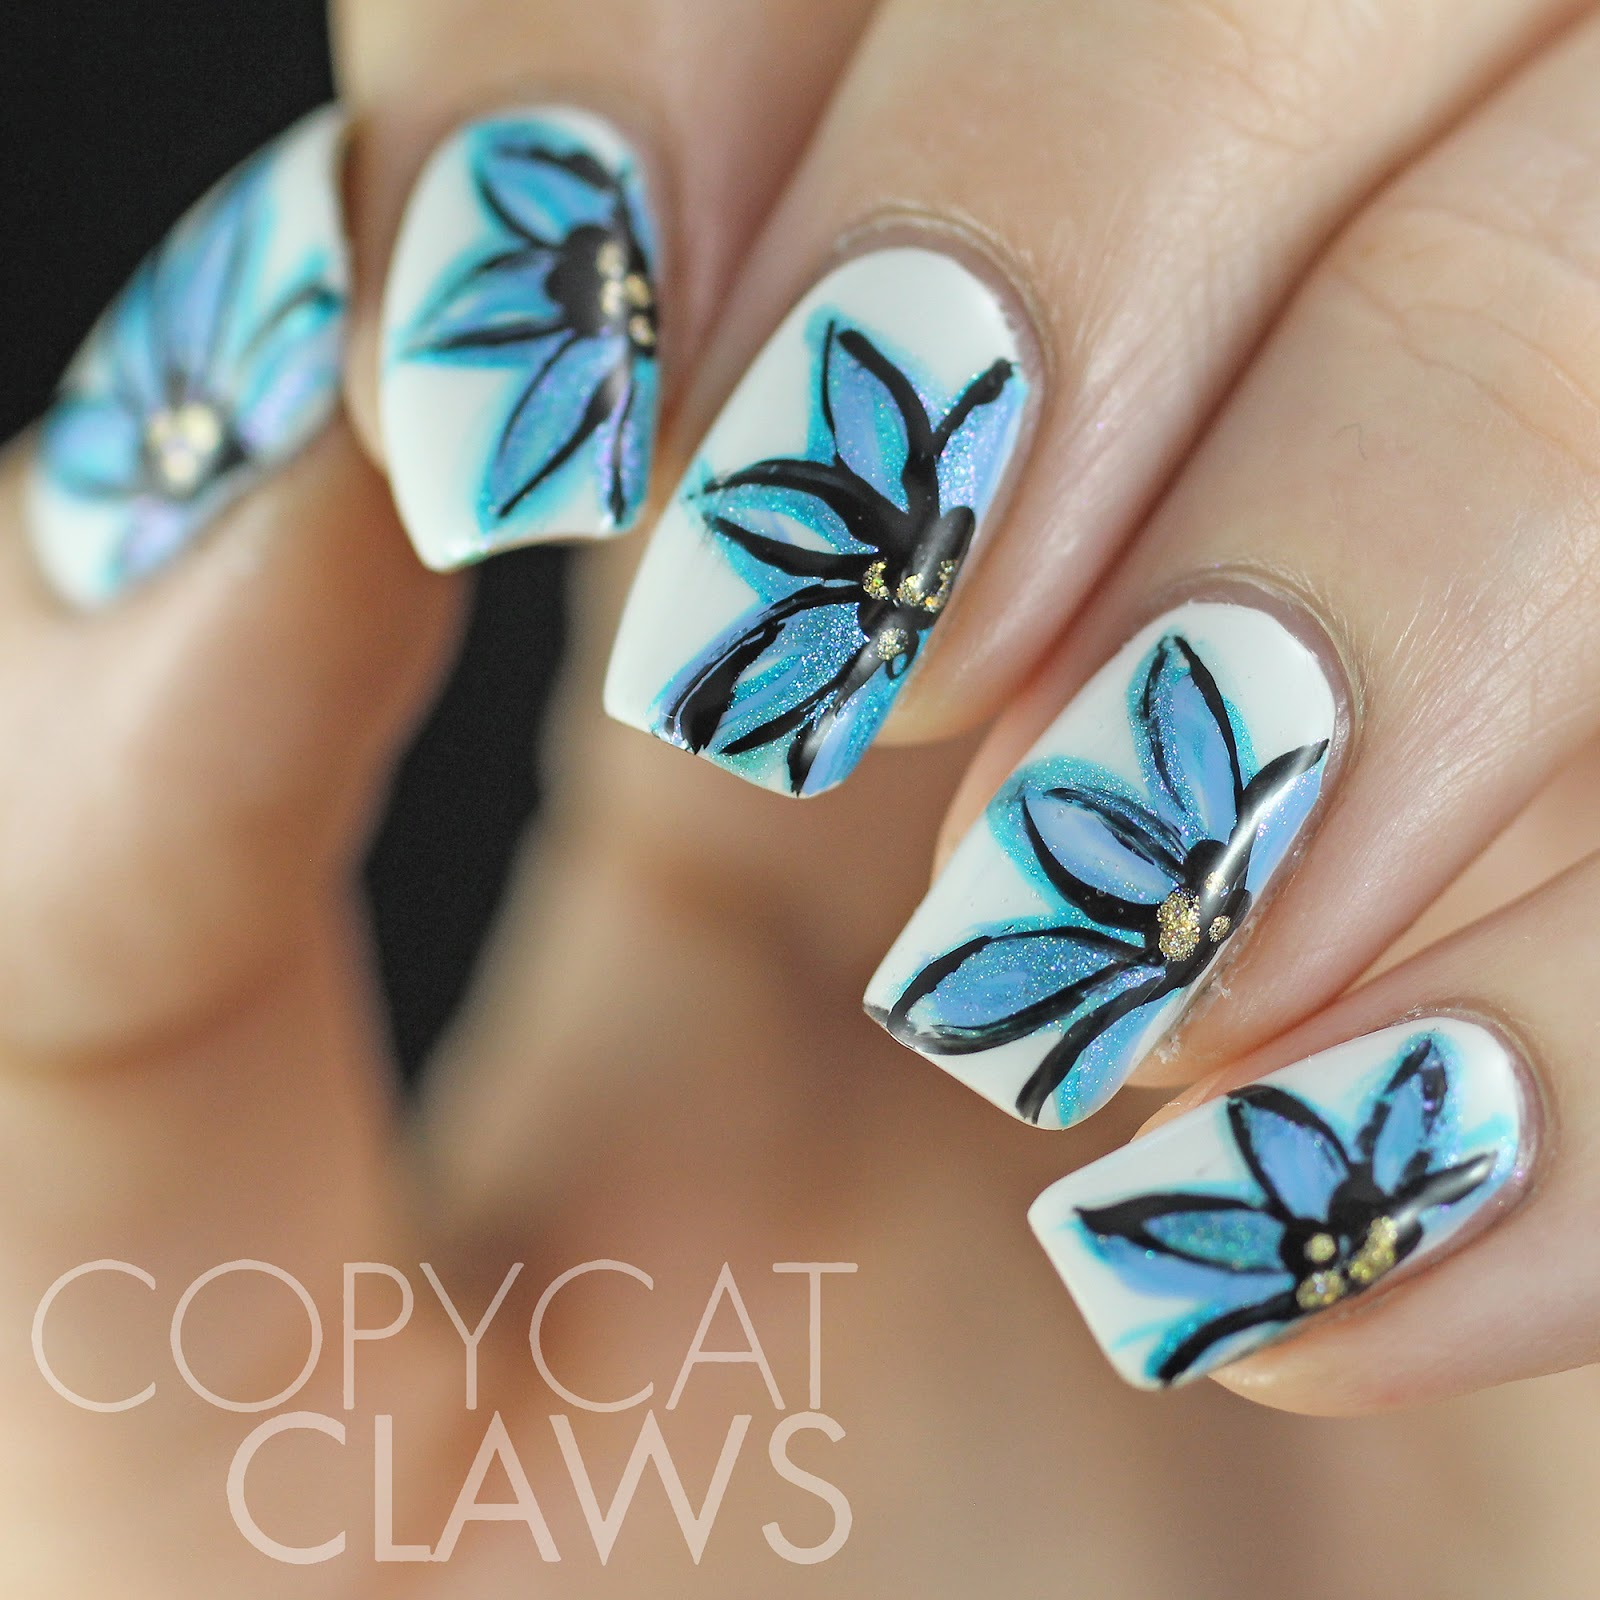 Flower Nails: Copycat Claws: Freehand Blue Flower Nail Art